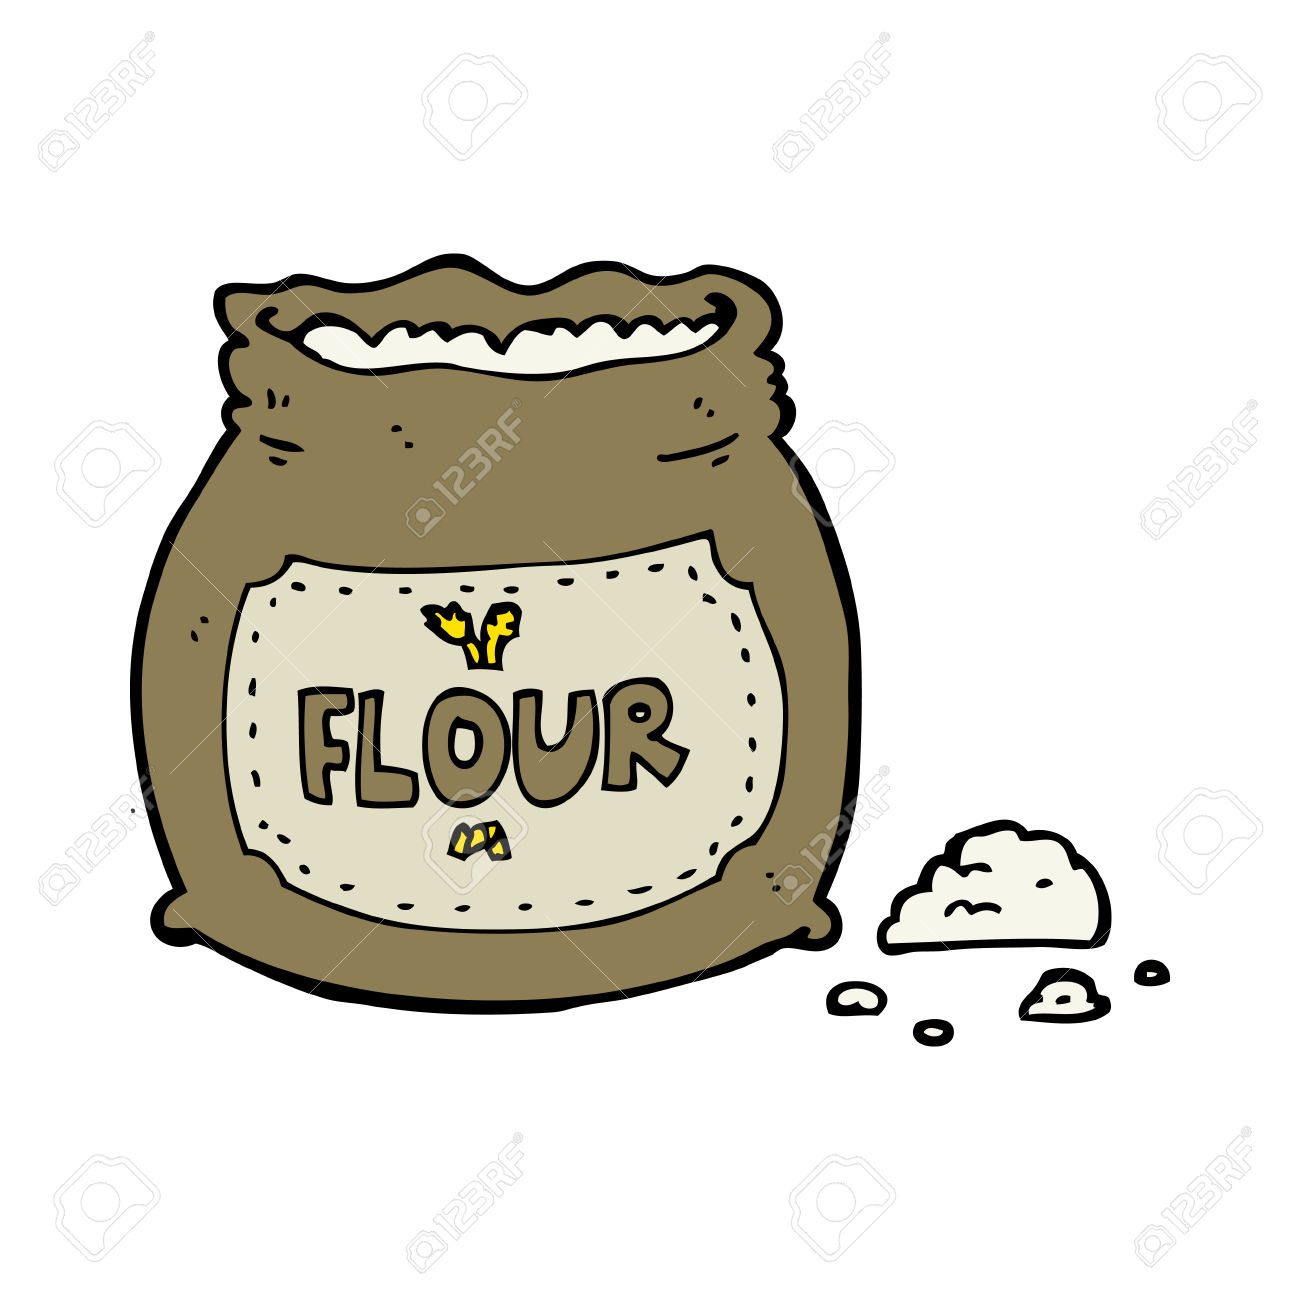 6 flour clipart preview bag of flour clip hdclipartall 6 flour clipart preview bag of